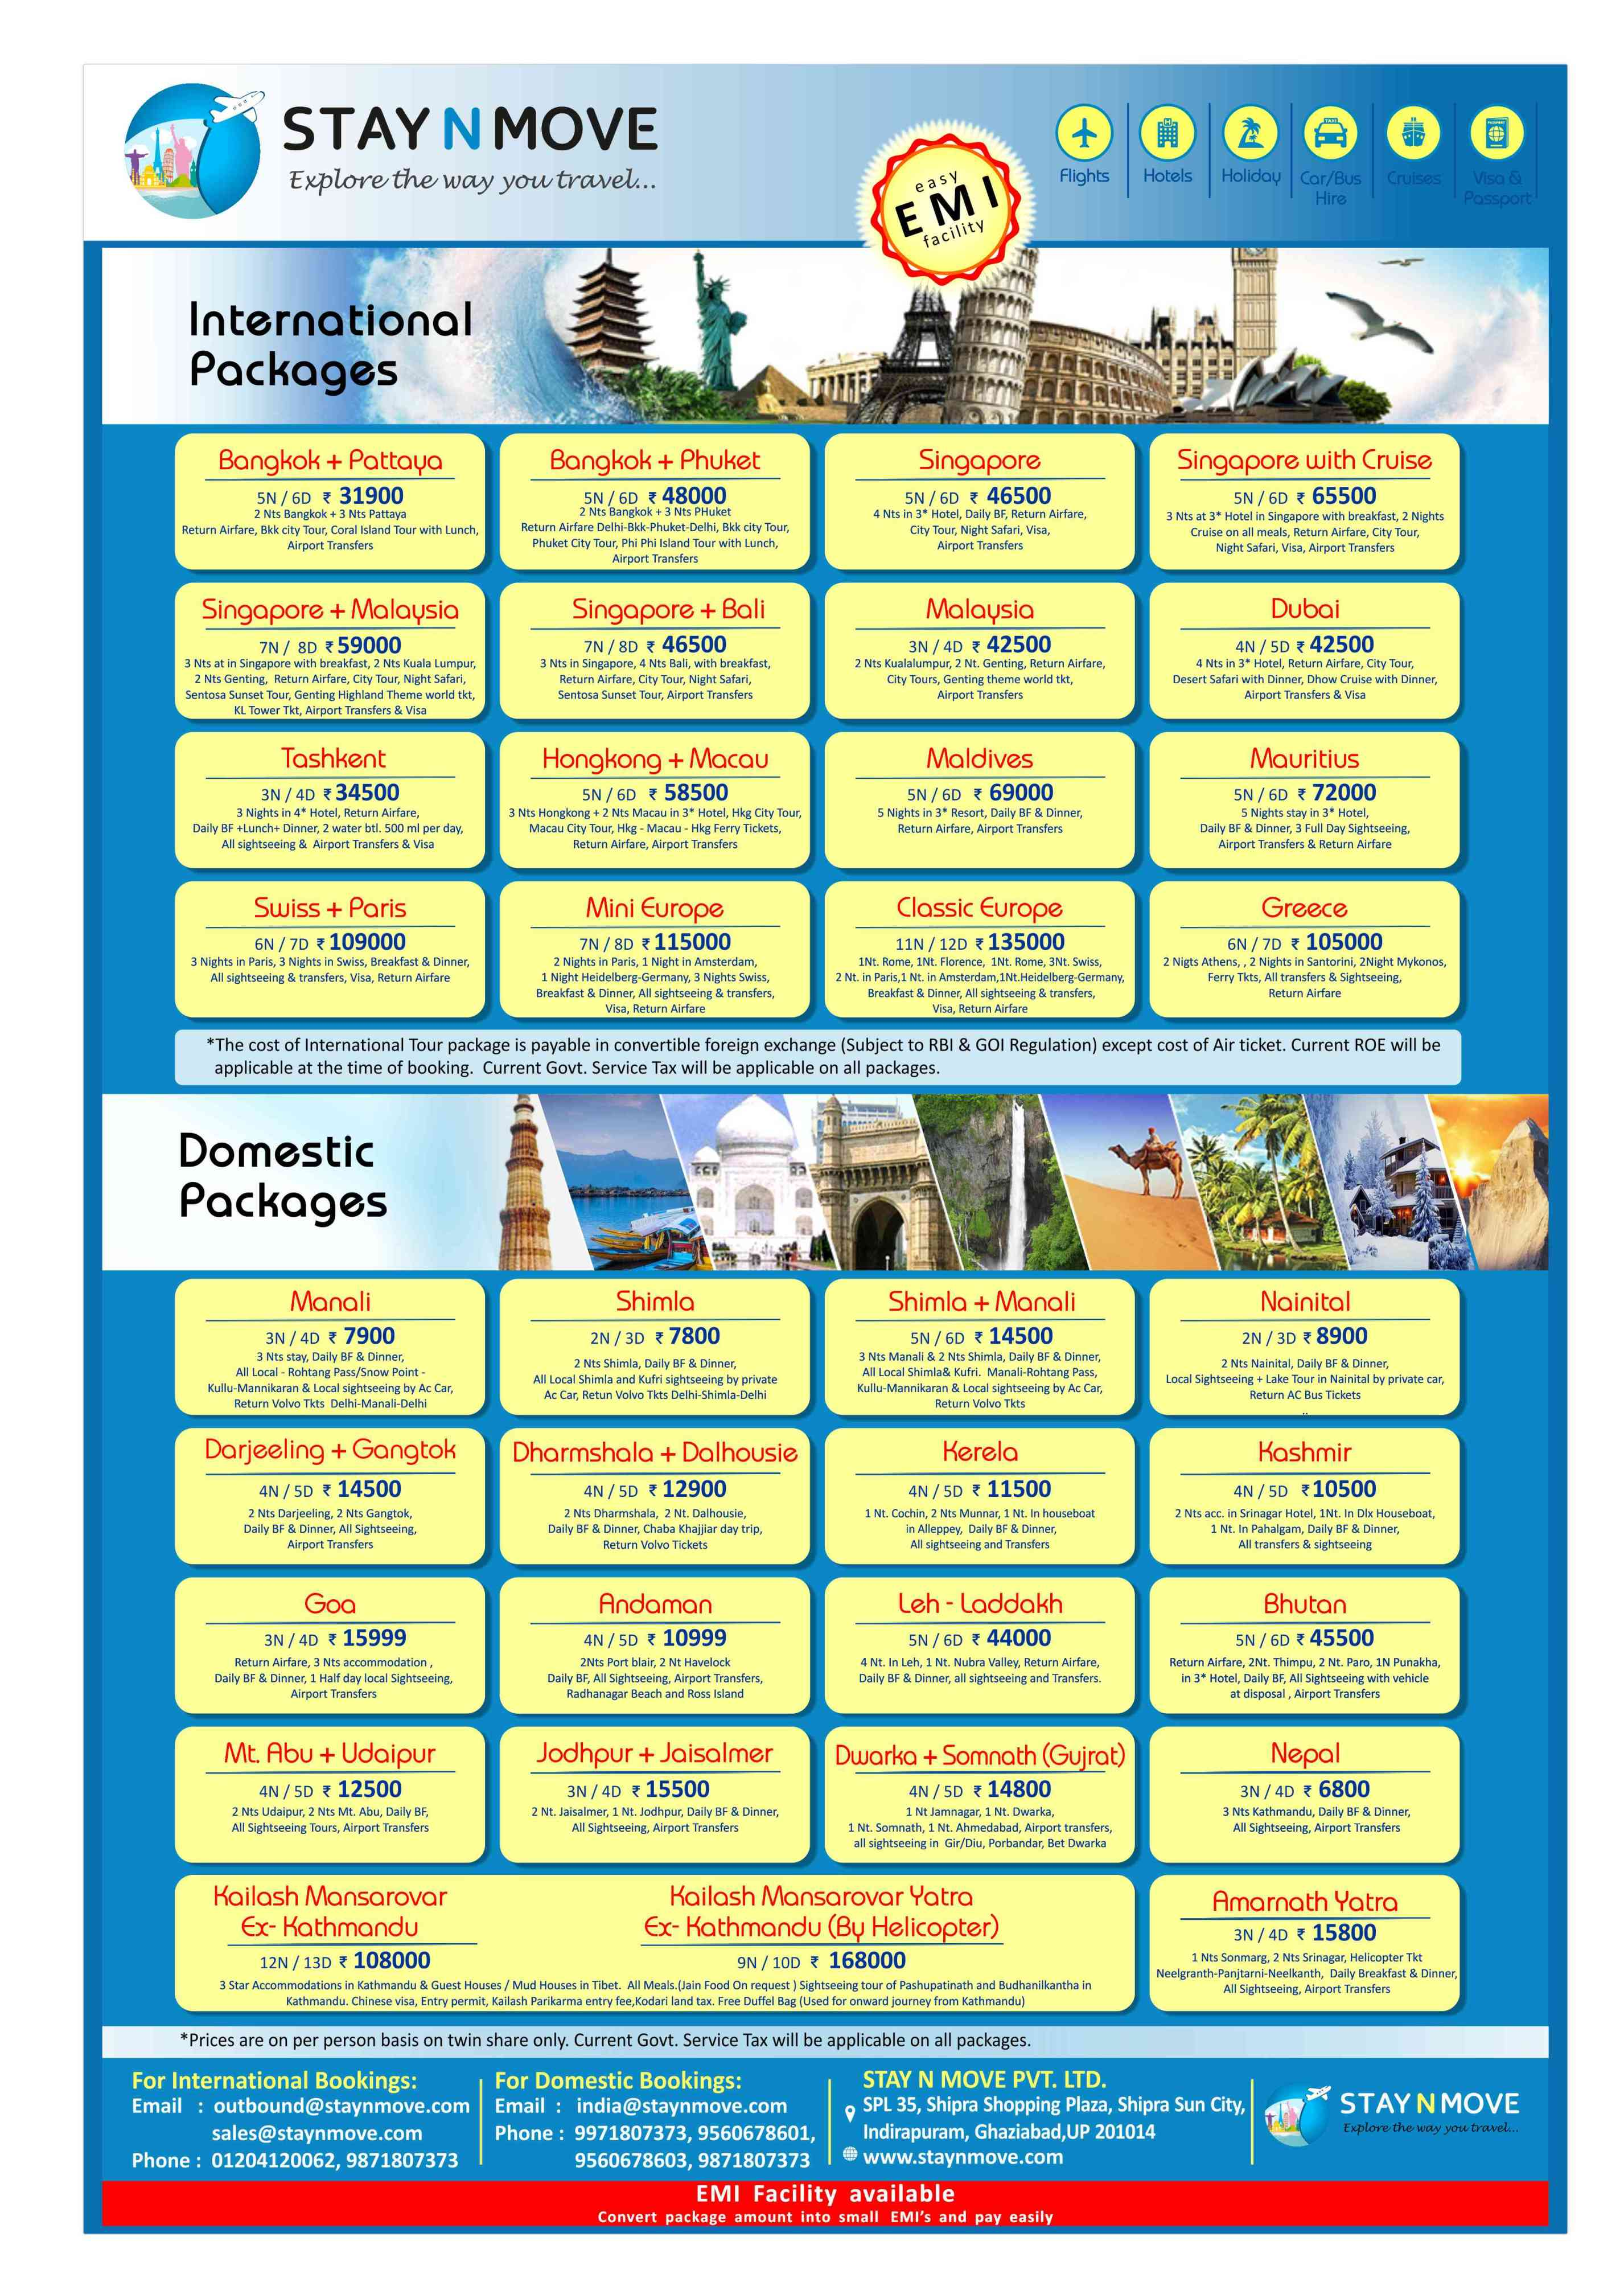 Best International Your Packages Thailand 5 Nights 6 Days 31500 Tashkent 3 Nights 4 Days 34500 Singapore 5 Nights 6 Days 47500 Malaysia 4 Nights 5 Days 42000 Singapore Malaysia 7 Nights 8 Days 58500 Singapore With Cruise 5 Nights 6 Days 65000 Dubai 4 Nights 5 Days 42000 Maldives 3 Nights 4 Days 69000 Mauritius 6 Nights 7 Days 72000 Europe 7 Nights 8 Days 118000 Europe 11 Nights 12 Days 136000 Greece 6 Nights 7 Days 105000 USA 16 Nights 17 Days 315000 Hongkong Macau 5 Nights 6 Days 57500